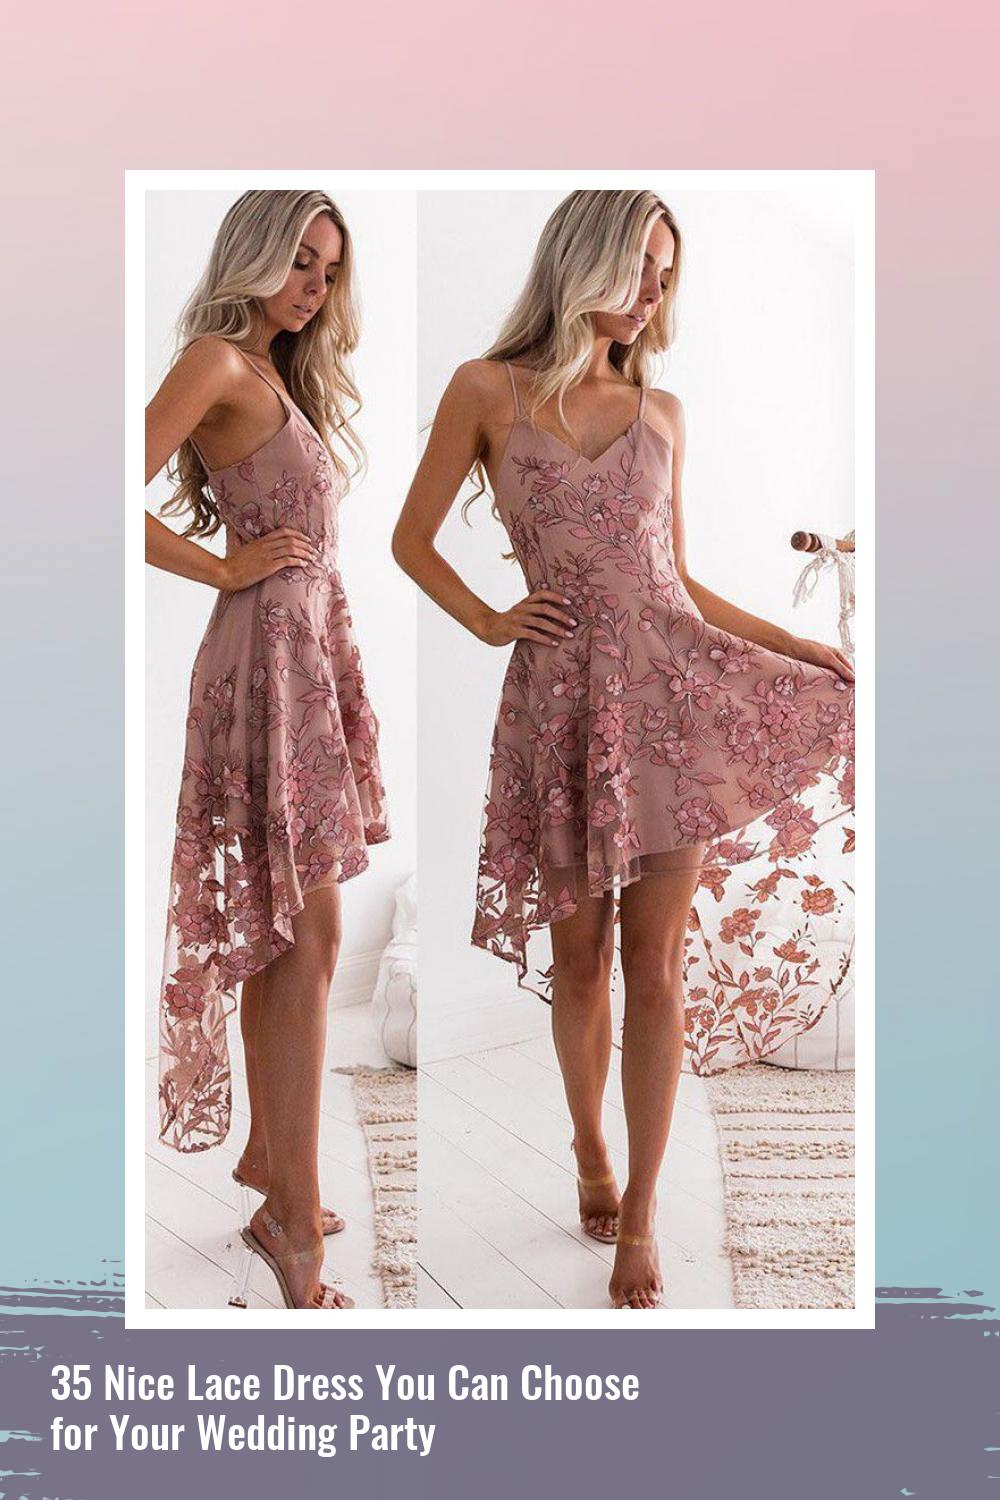 35 Nice Lace Dress You Can Choose for Your Wedding Party 16